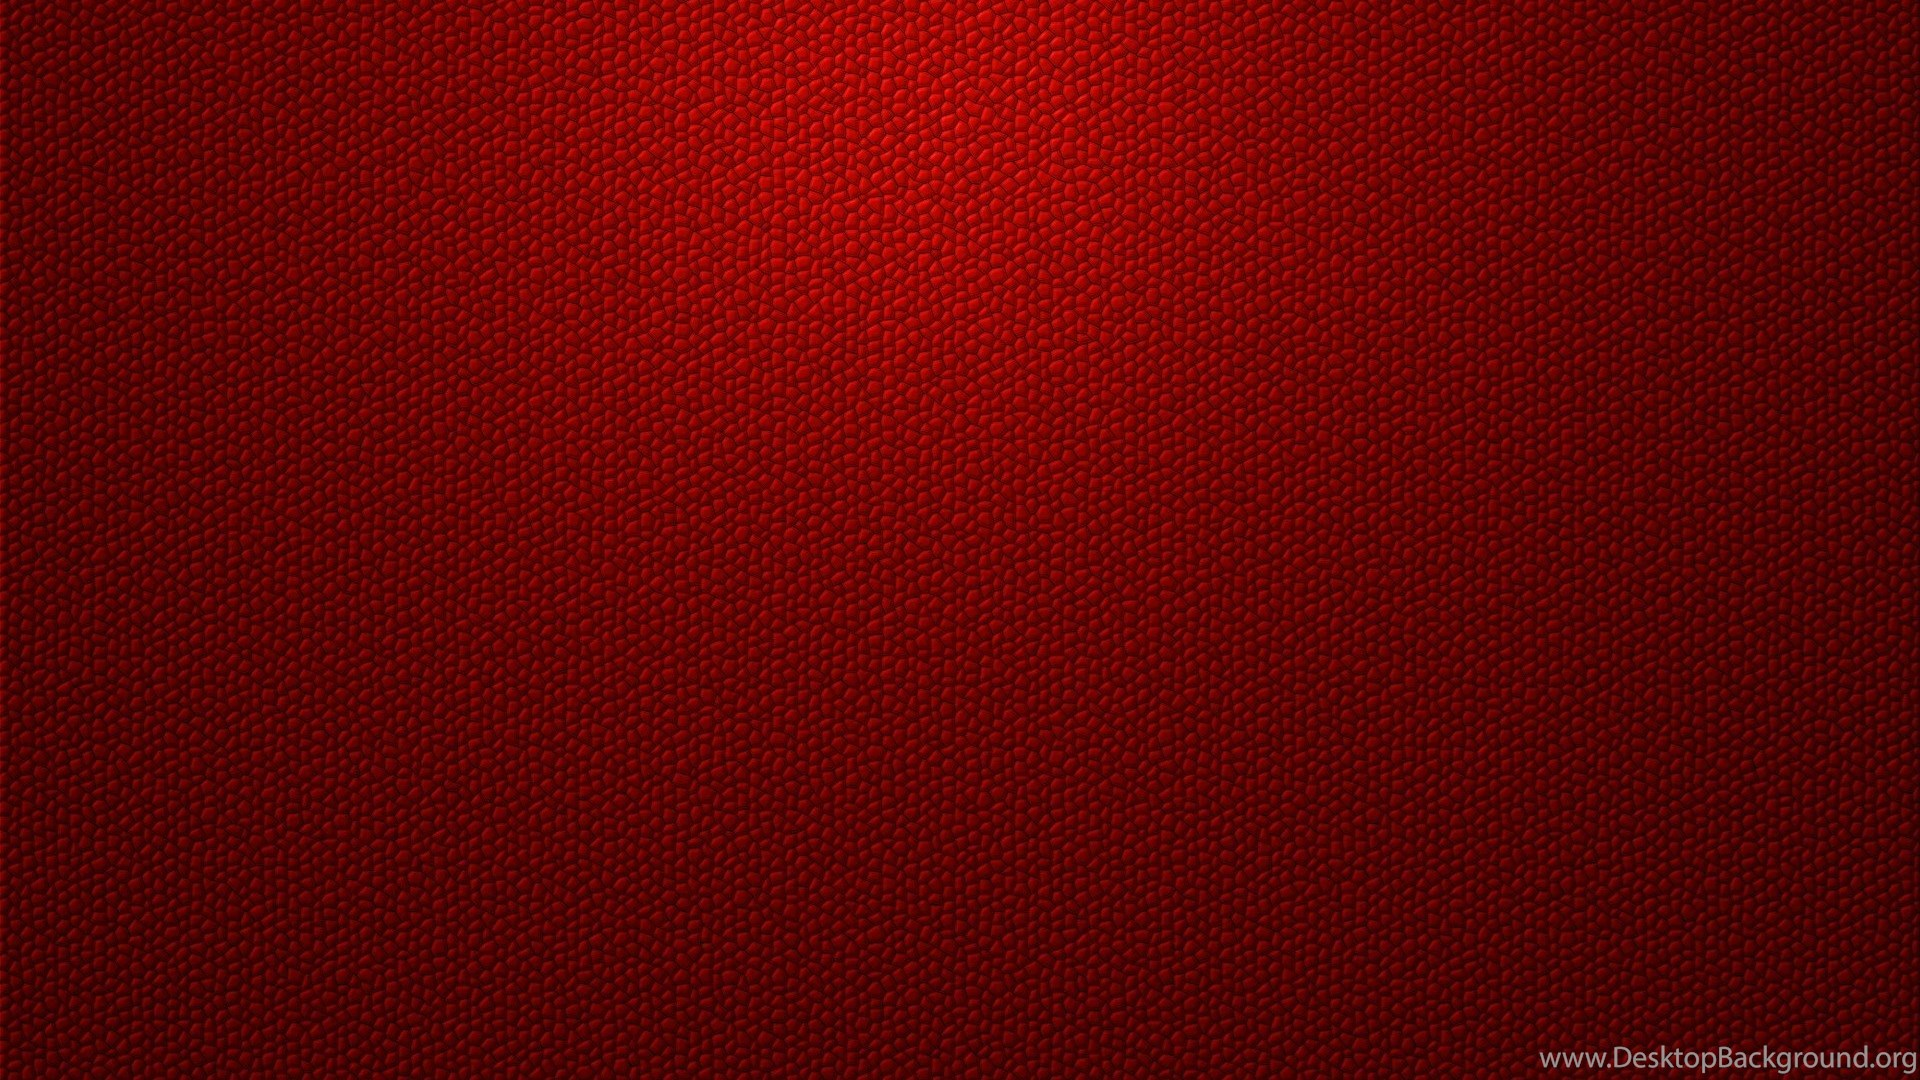 HD Plain Red Wallpapers HD Full Size HiReWallpapers 2754 ...